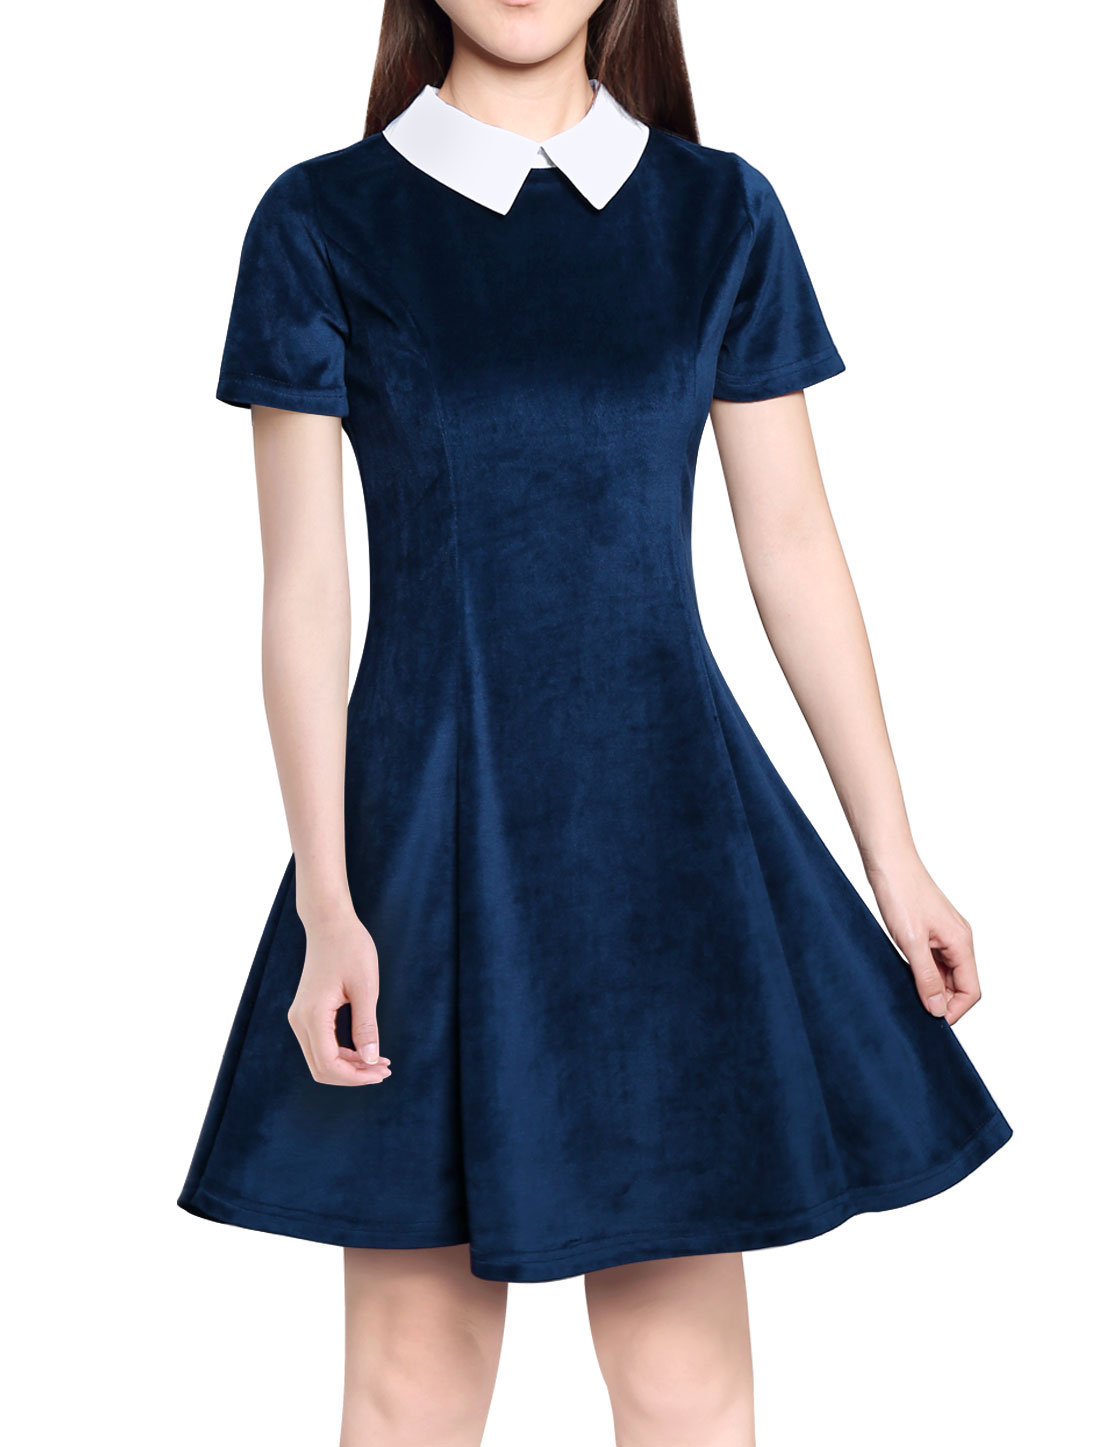 Ladies Contrast Collared Short Sleeves Above Knee Flare Dress Blue XL